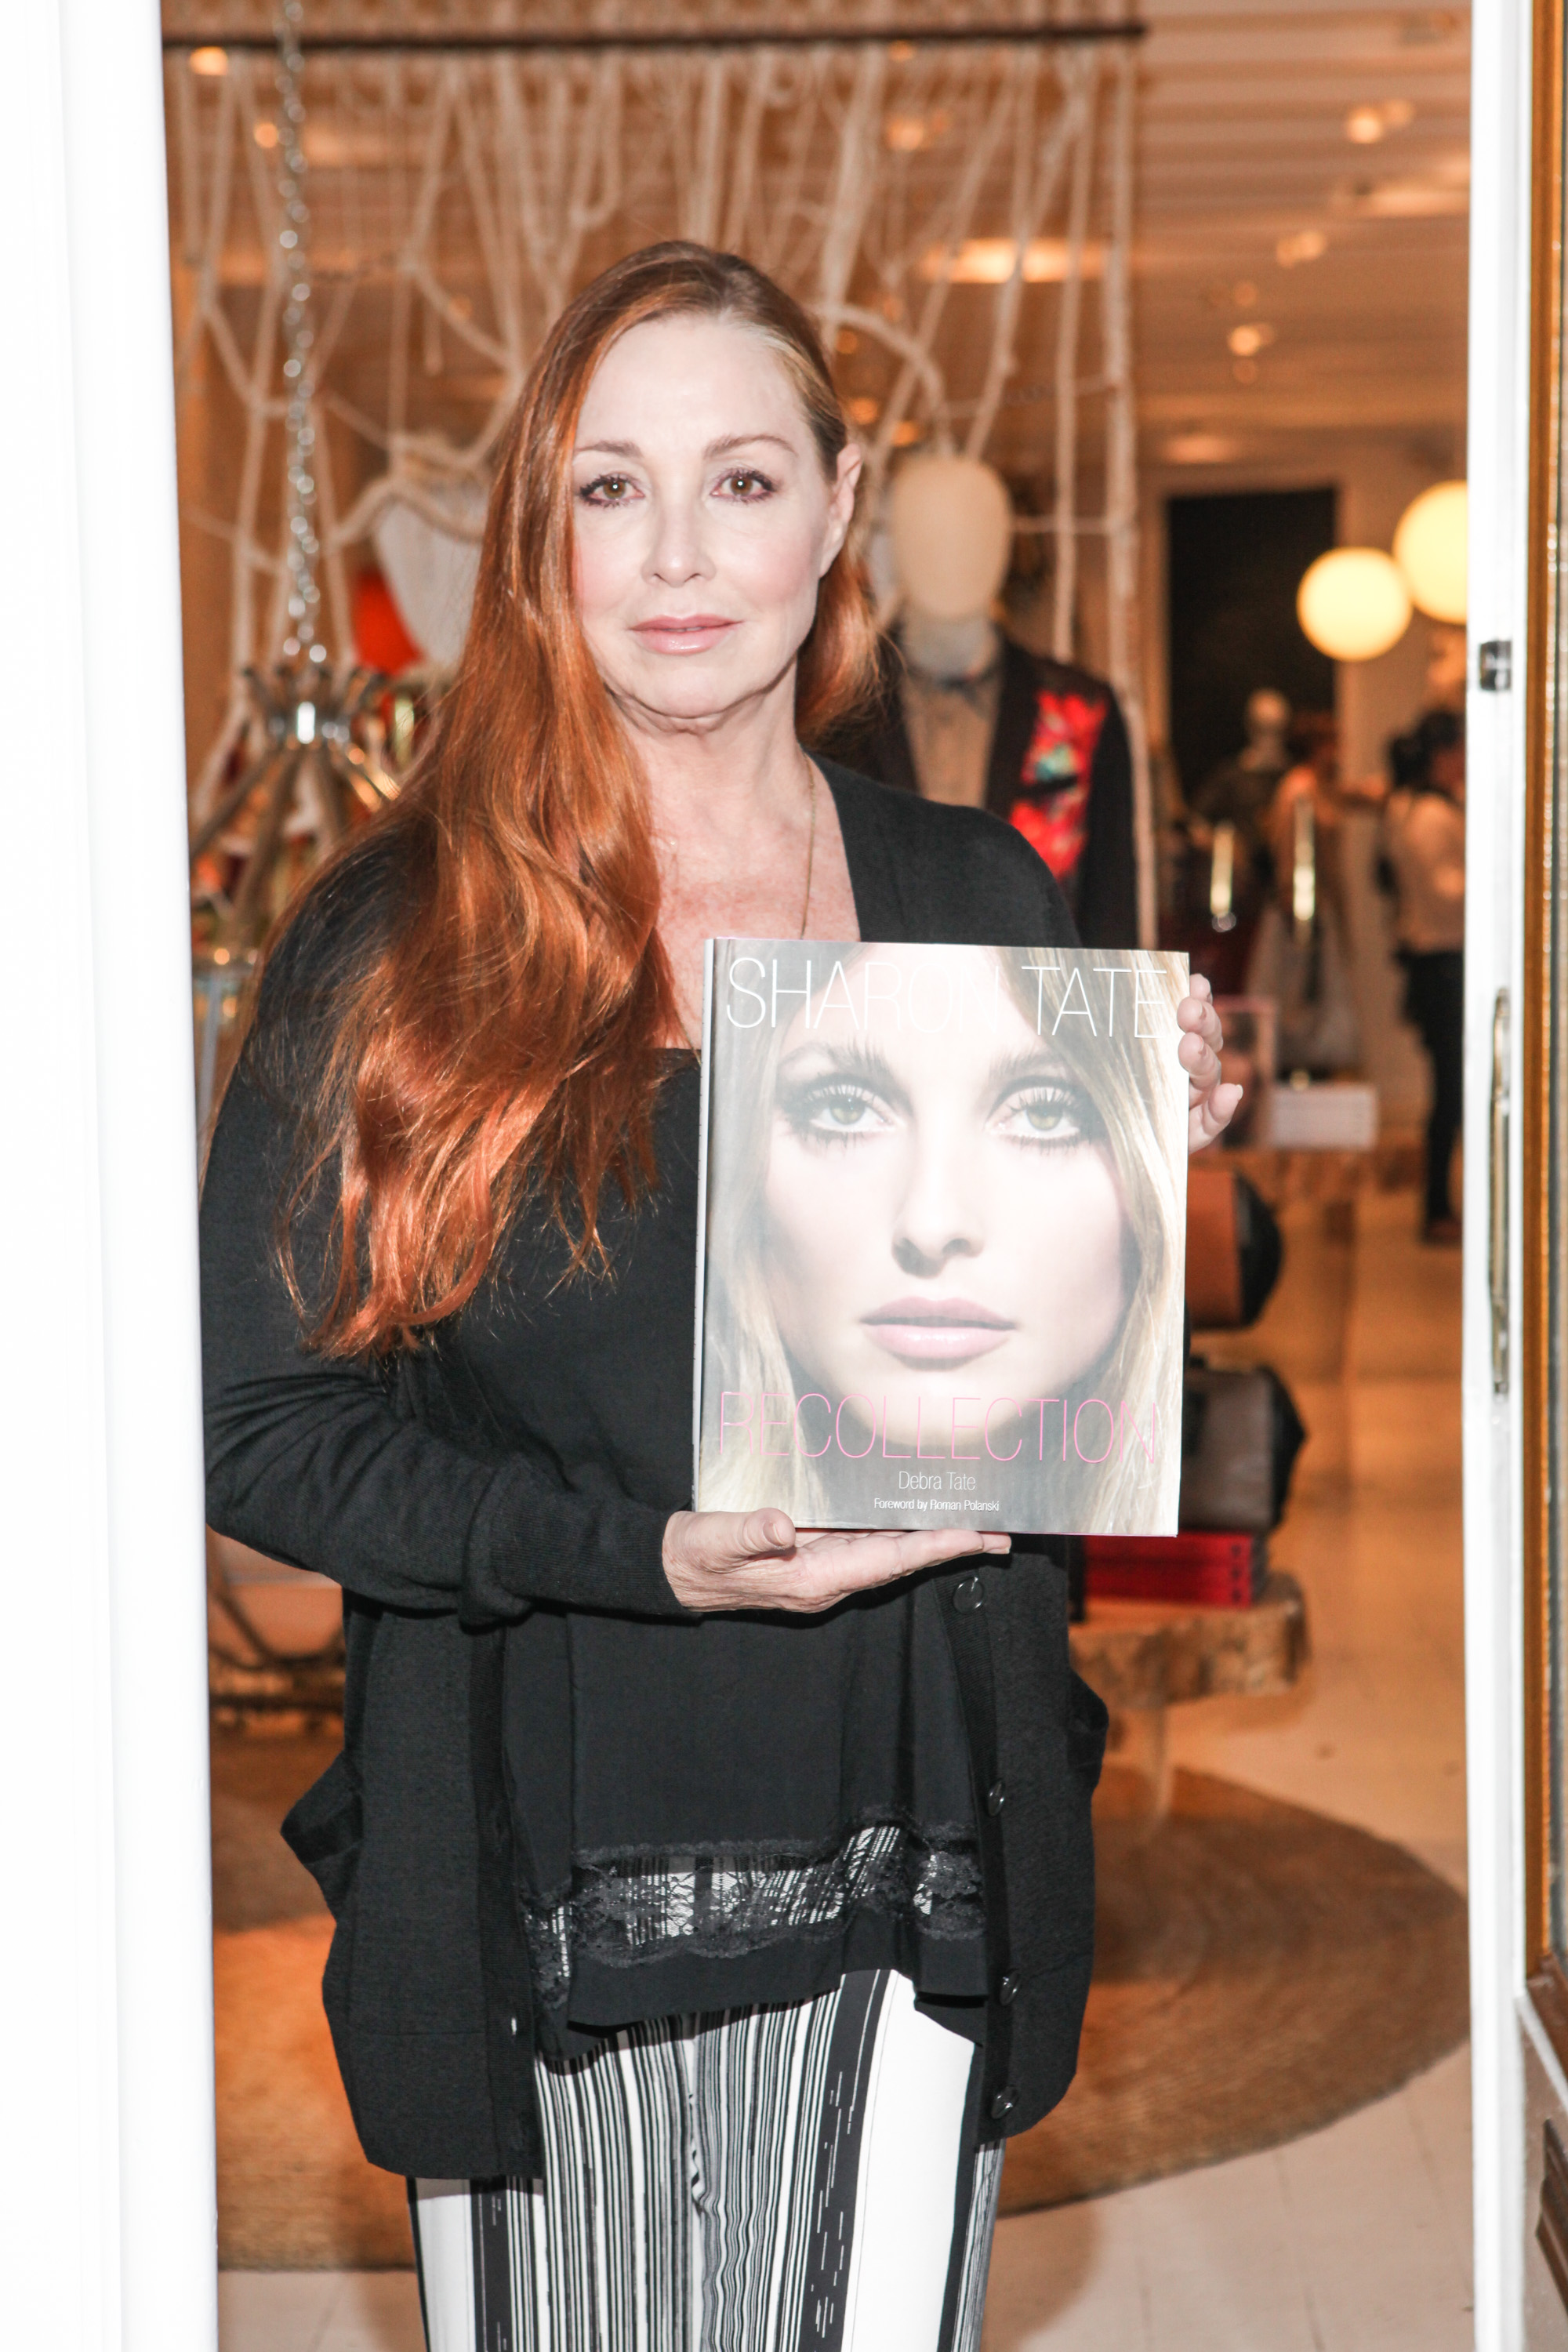 Author Debra Tate attends the signing for her book  Sharon Tate: Recollection  on October 21, 2014 in New York City.